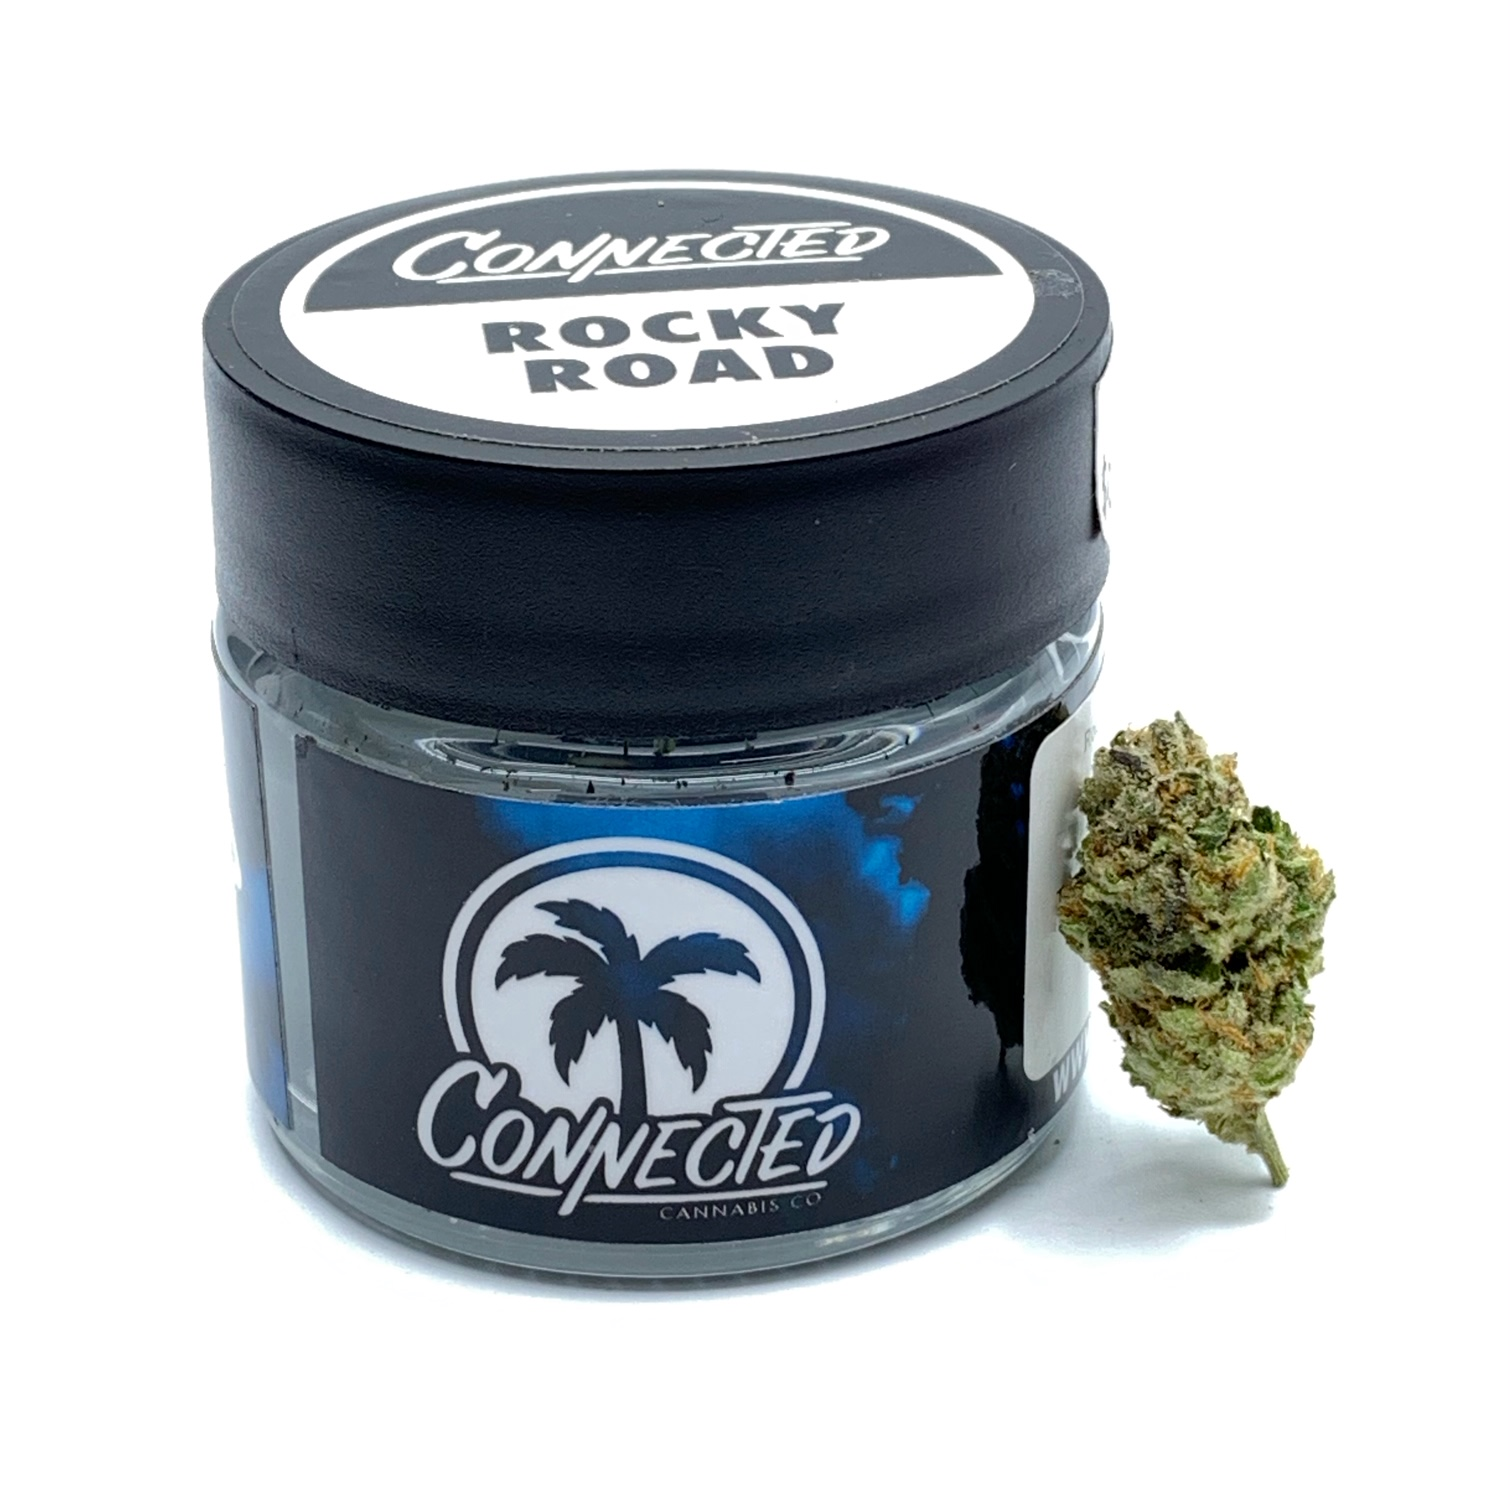 Connected (I): Rocky Road 3.5g